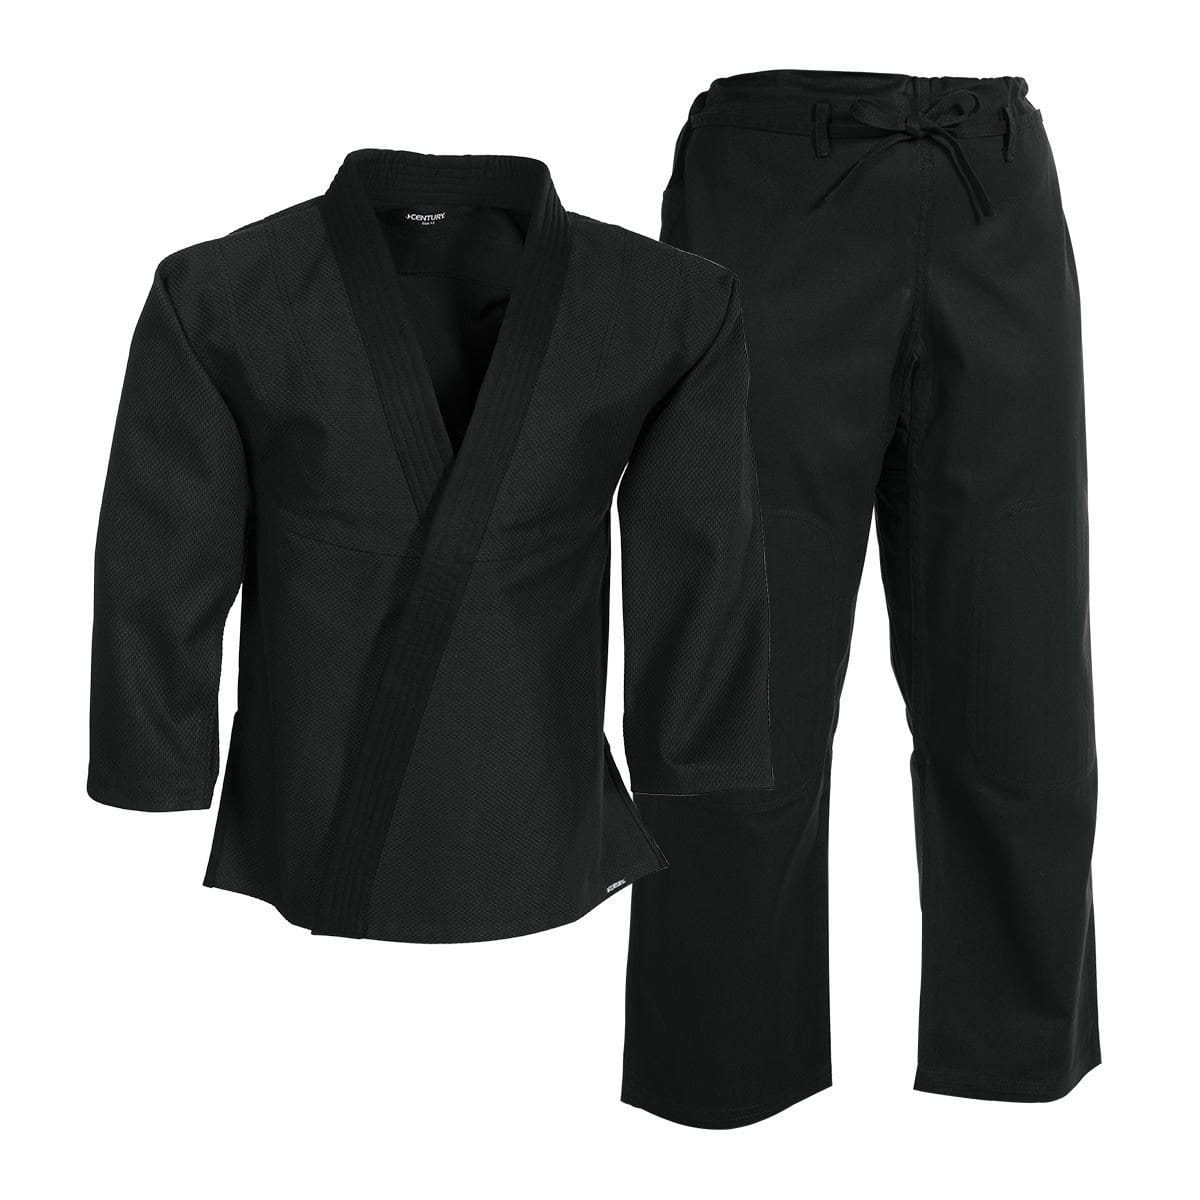 black Century  Brazilian-Fit Jiu-Jitsu Uniform